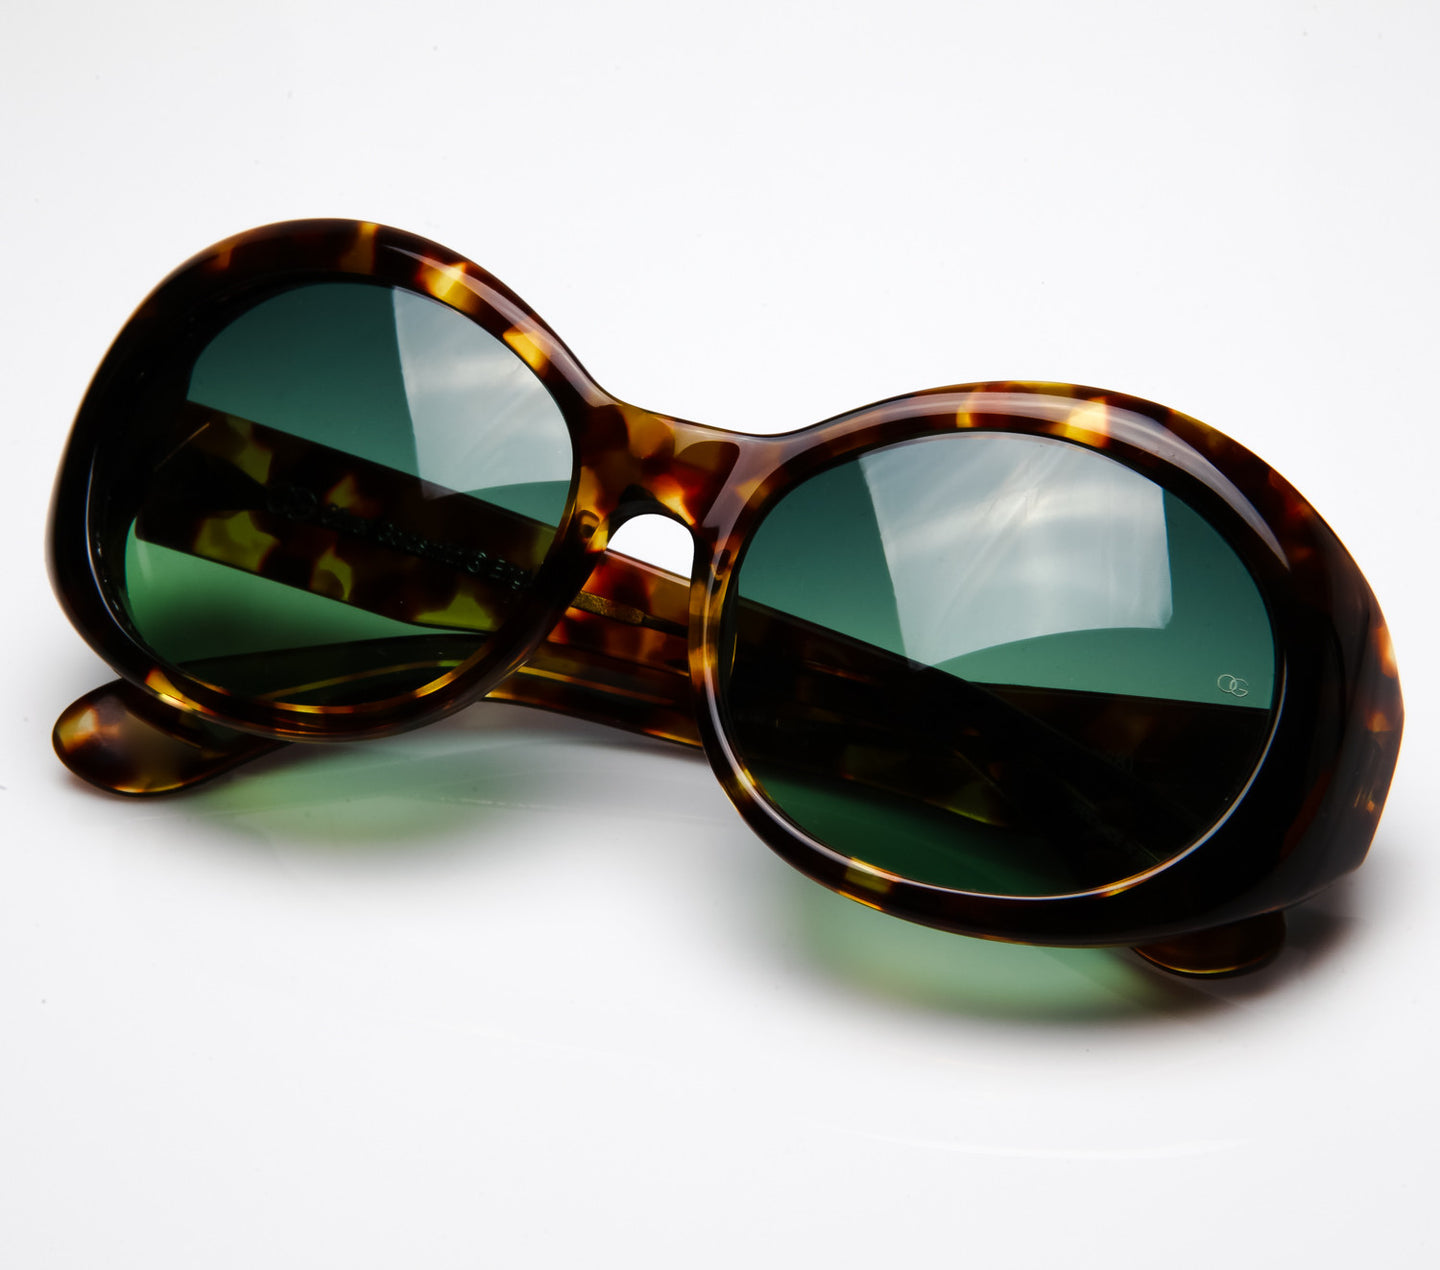 Oliver Goldsmith Olive Tortoiseshell SOPHIE (1968), oliver Goldsmith , glasses frames, eyeglasses online, eyeglass frames, mens glasses, womens glasses, buy glasses online, designer eyeglasses, vintage sunglasses, retro sunglasses, vintage glasses, sunglass, eyeglass, glasses, lens, vintage frames company, vf